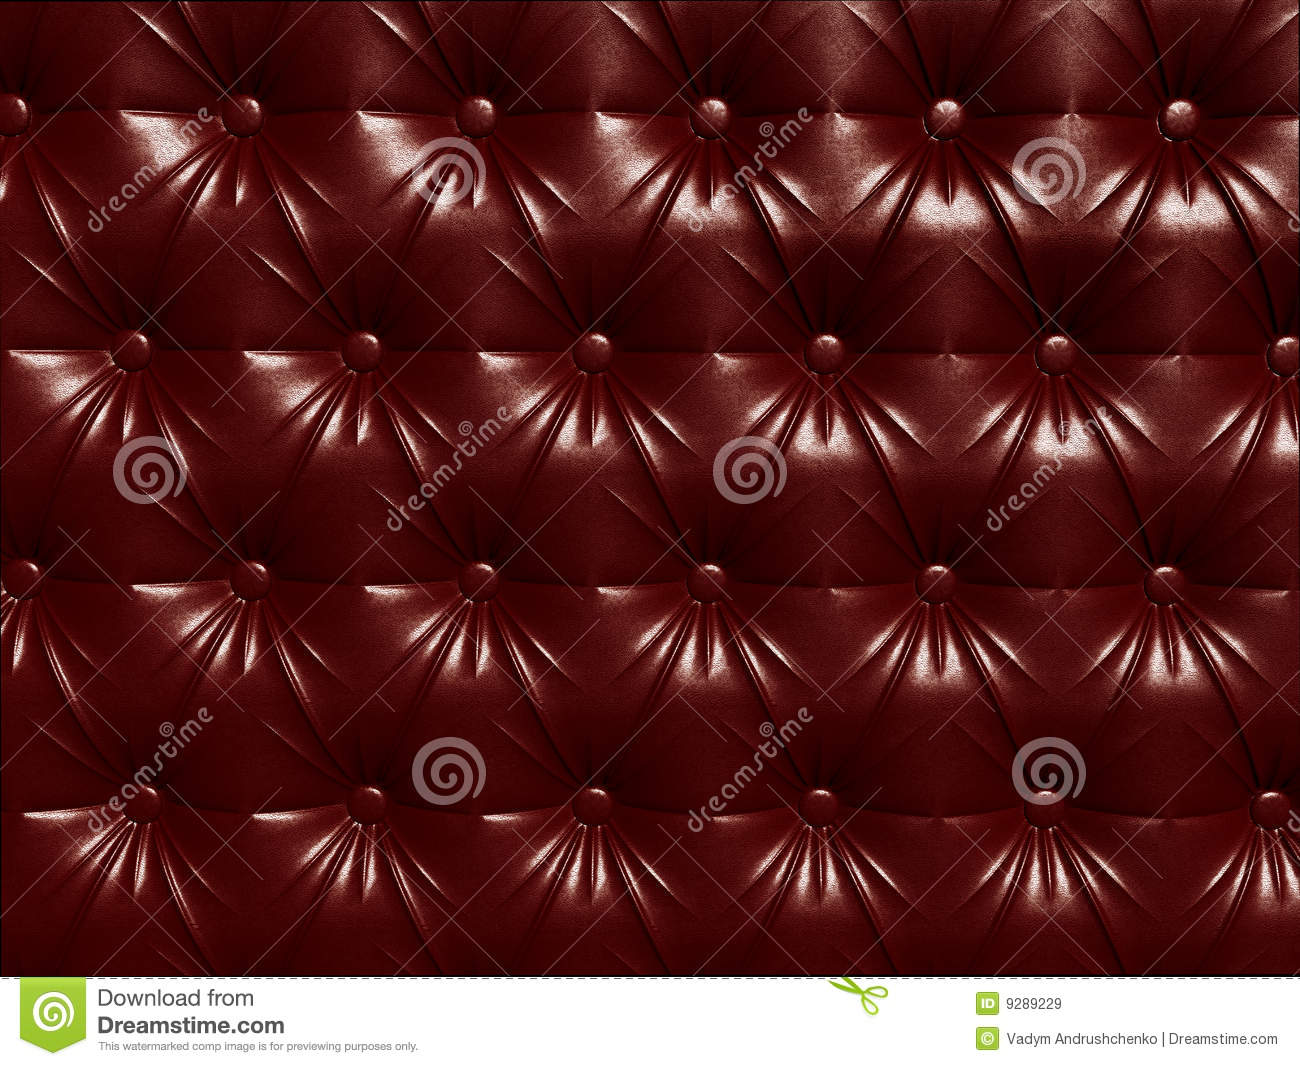 Tileable Wallpaper Repeats Left Right Up And Down Buttoned Red Leather Background Pattern Royalty Free Stock Images